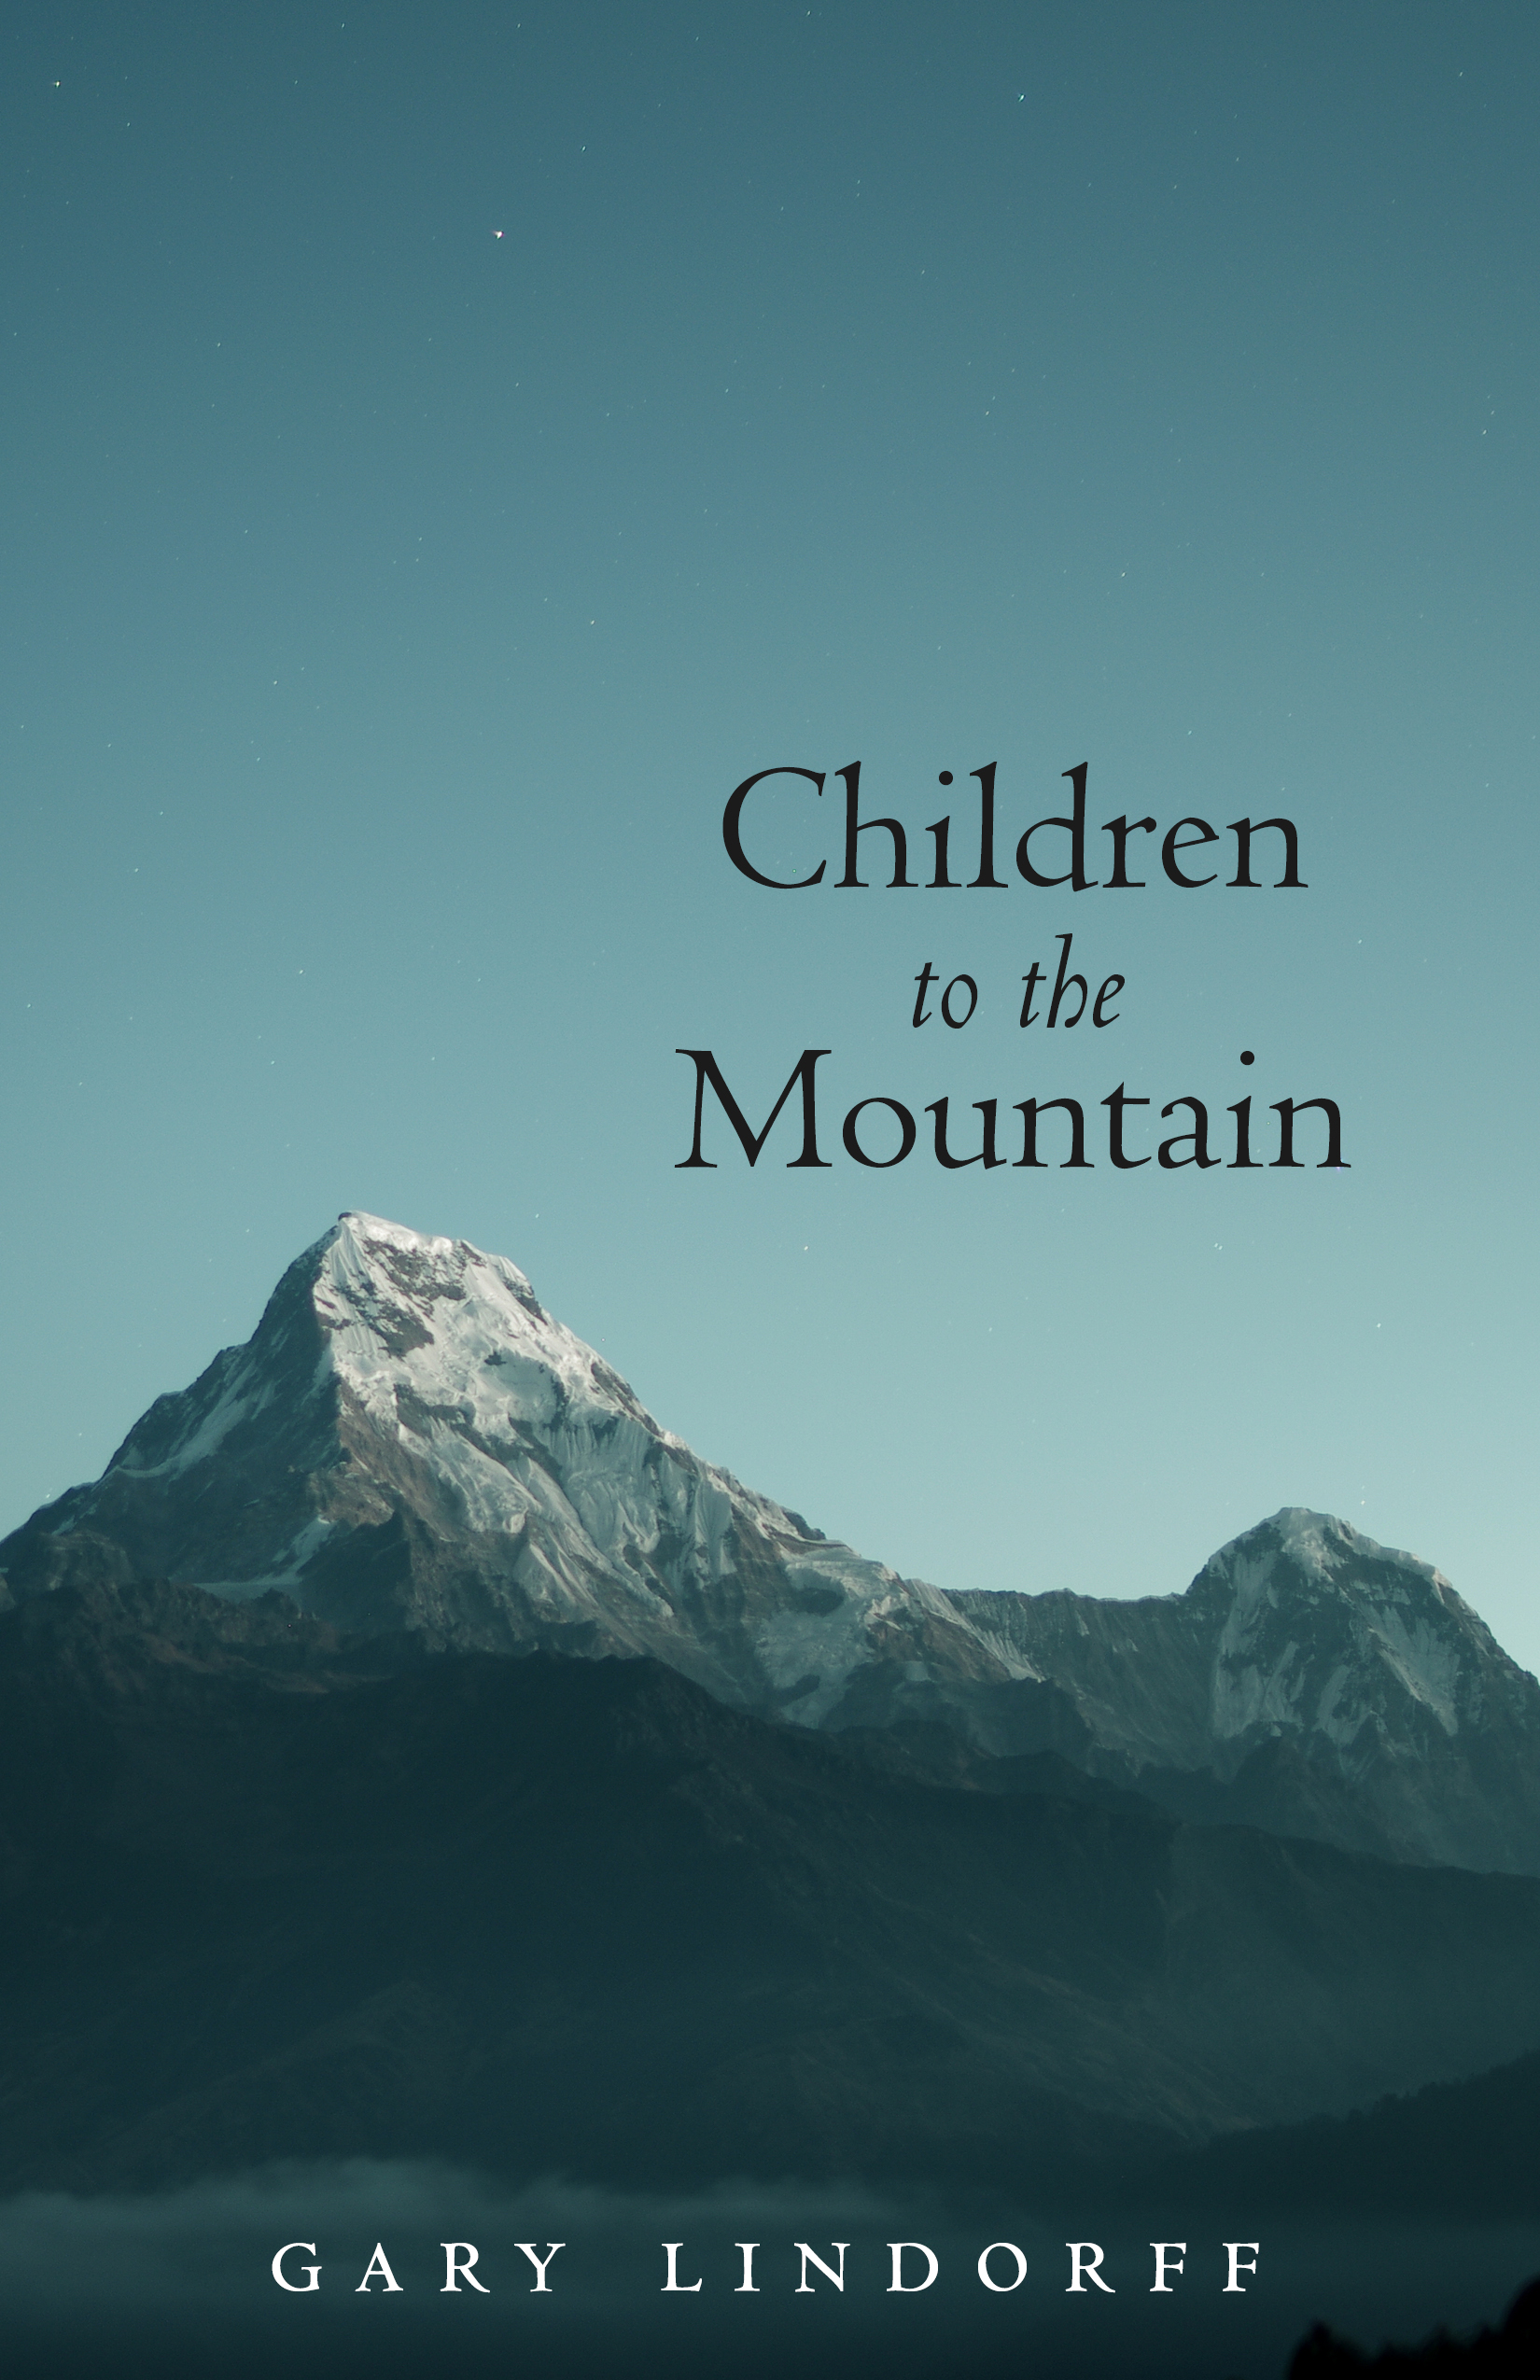 Children to the Mountain